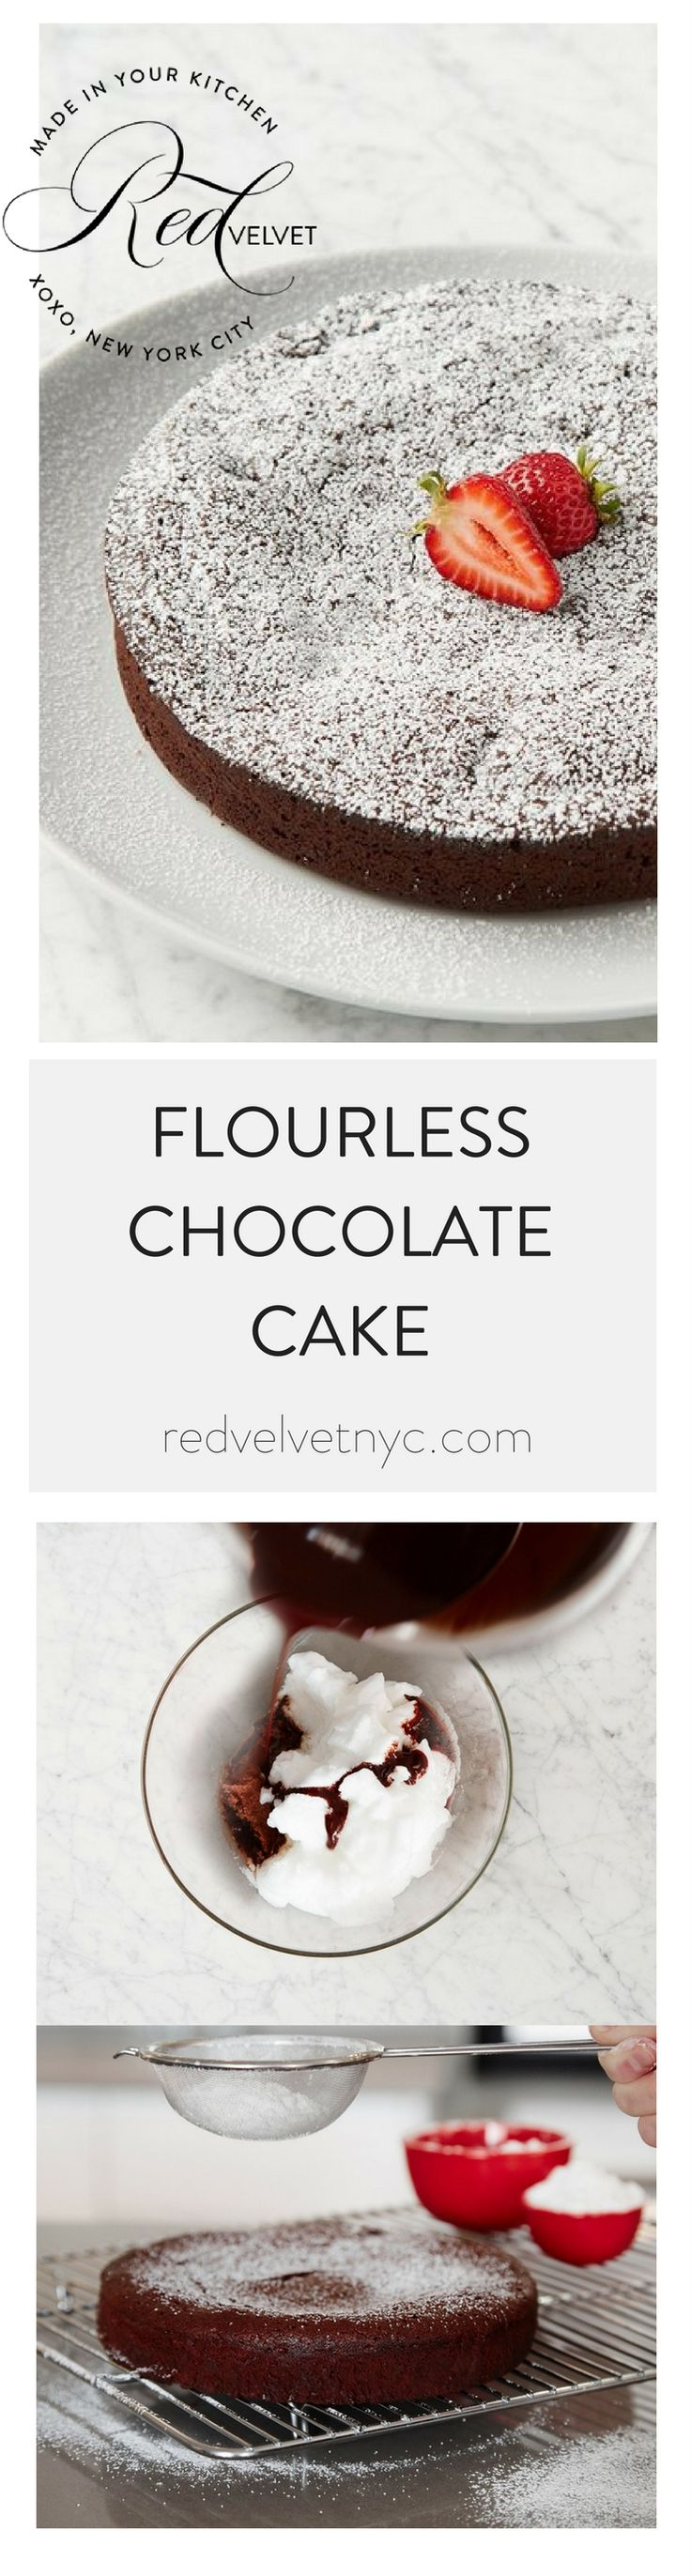 This smooth and creamy brownie-style cake is dense and rich, bursting with intense chocolate flavor. GLUTEN FREE! Since it has no flour, this French cake is 100% gluten free--but still plenty indulgen